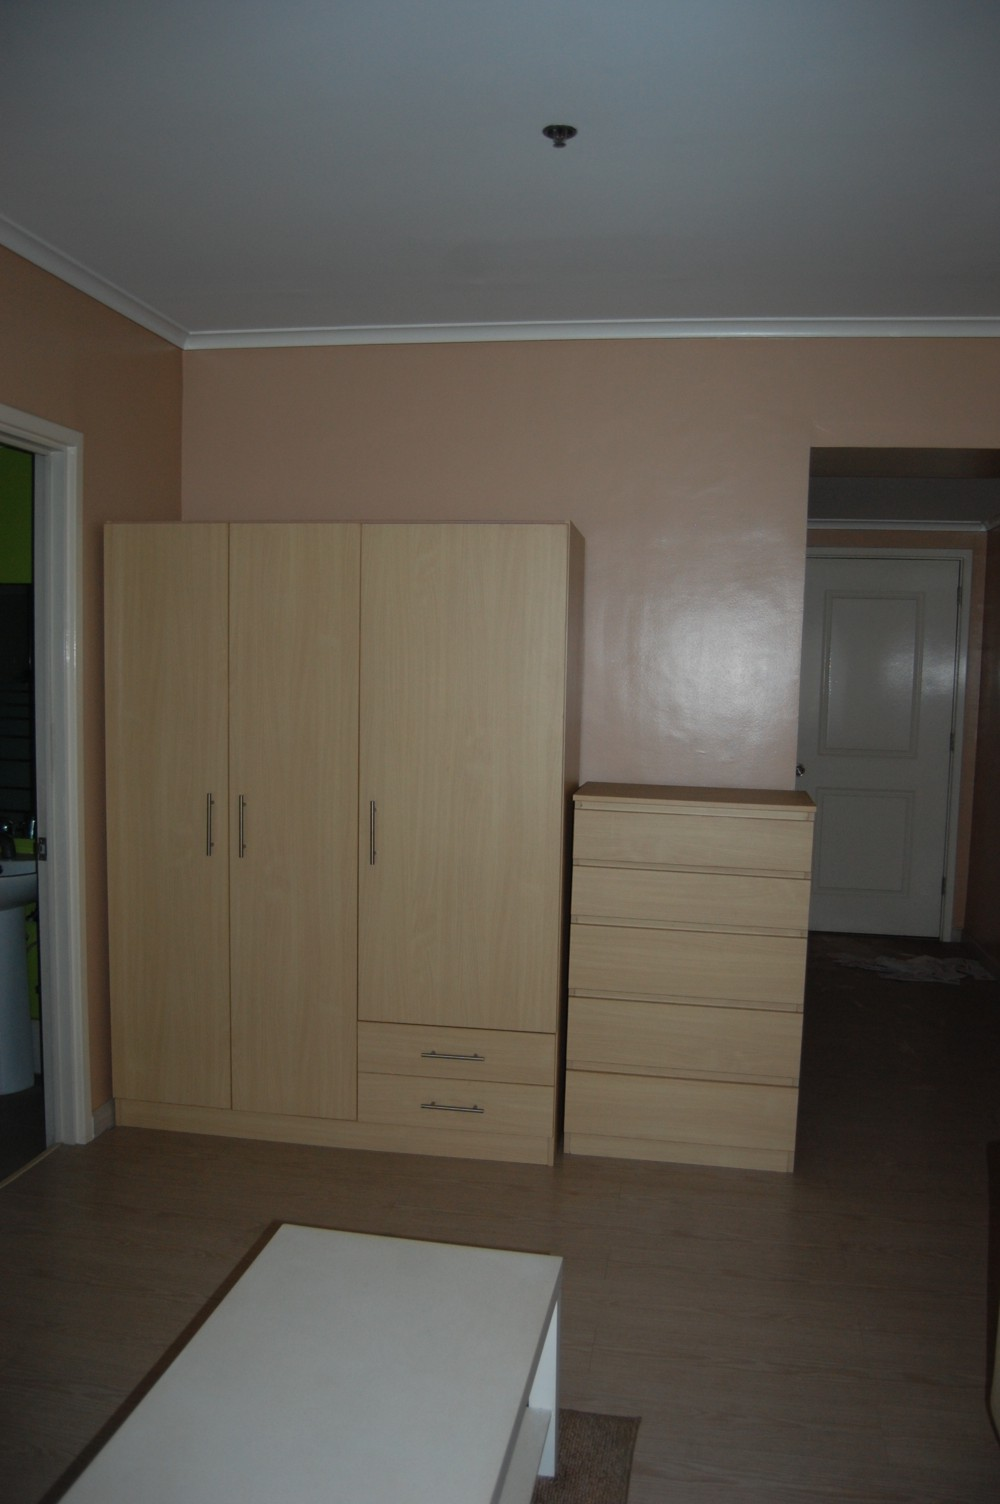 Closet and Cabinet